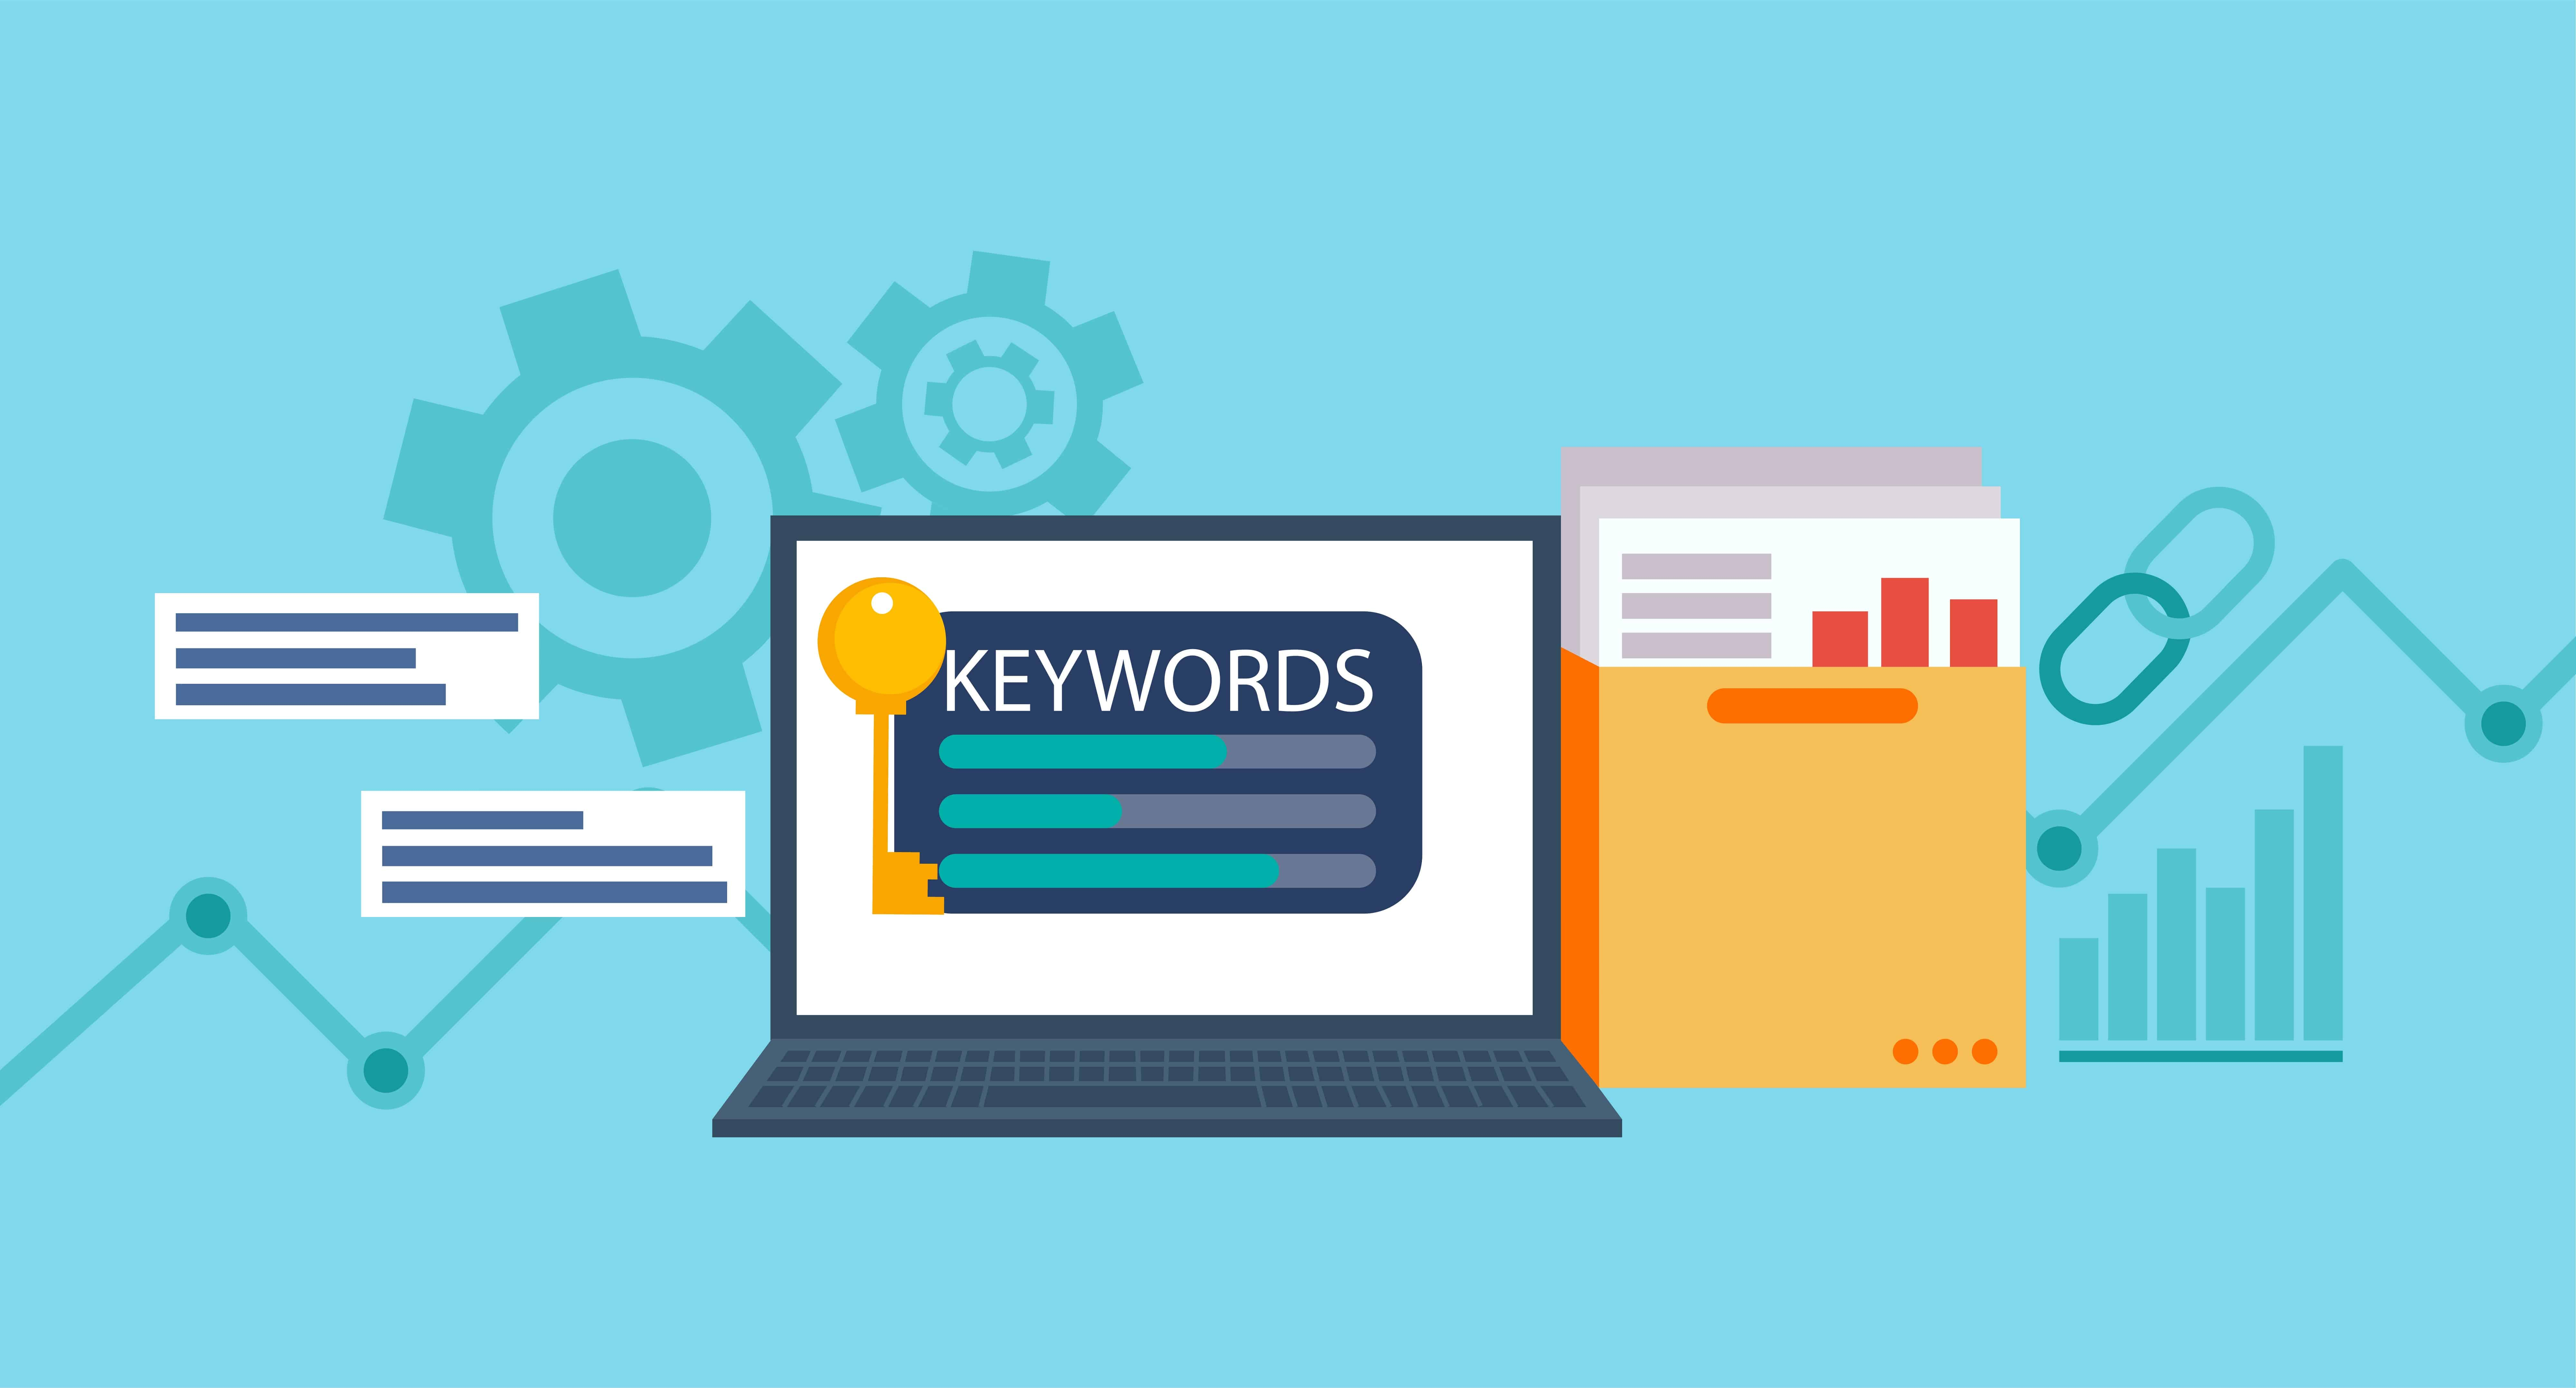 J.Louis Technology How To Choose Keywords